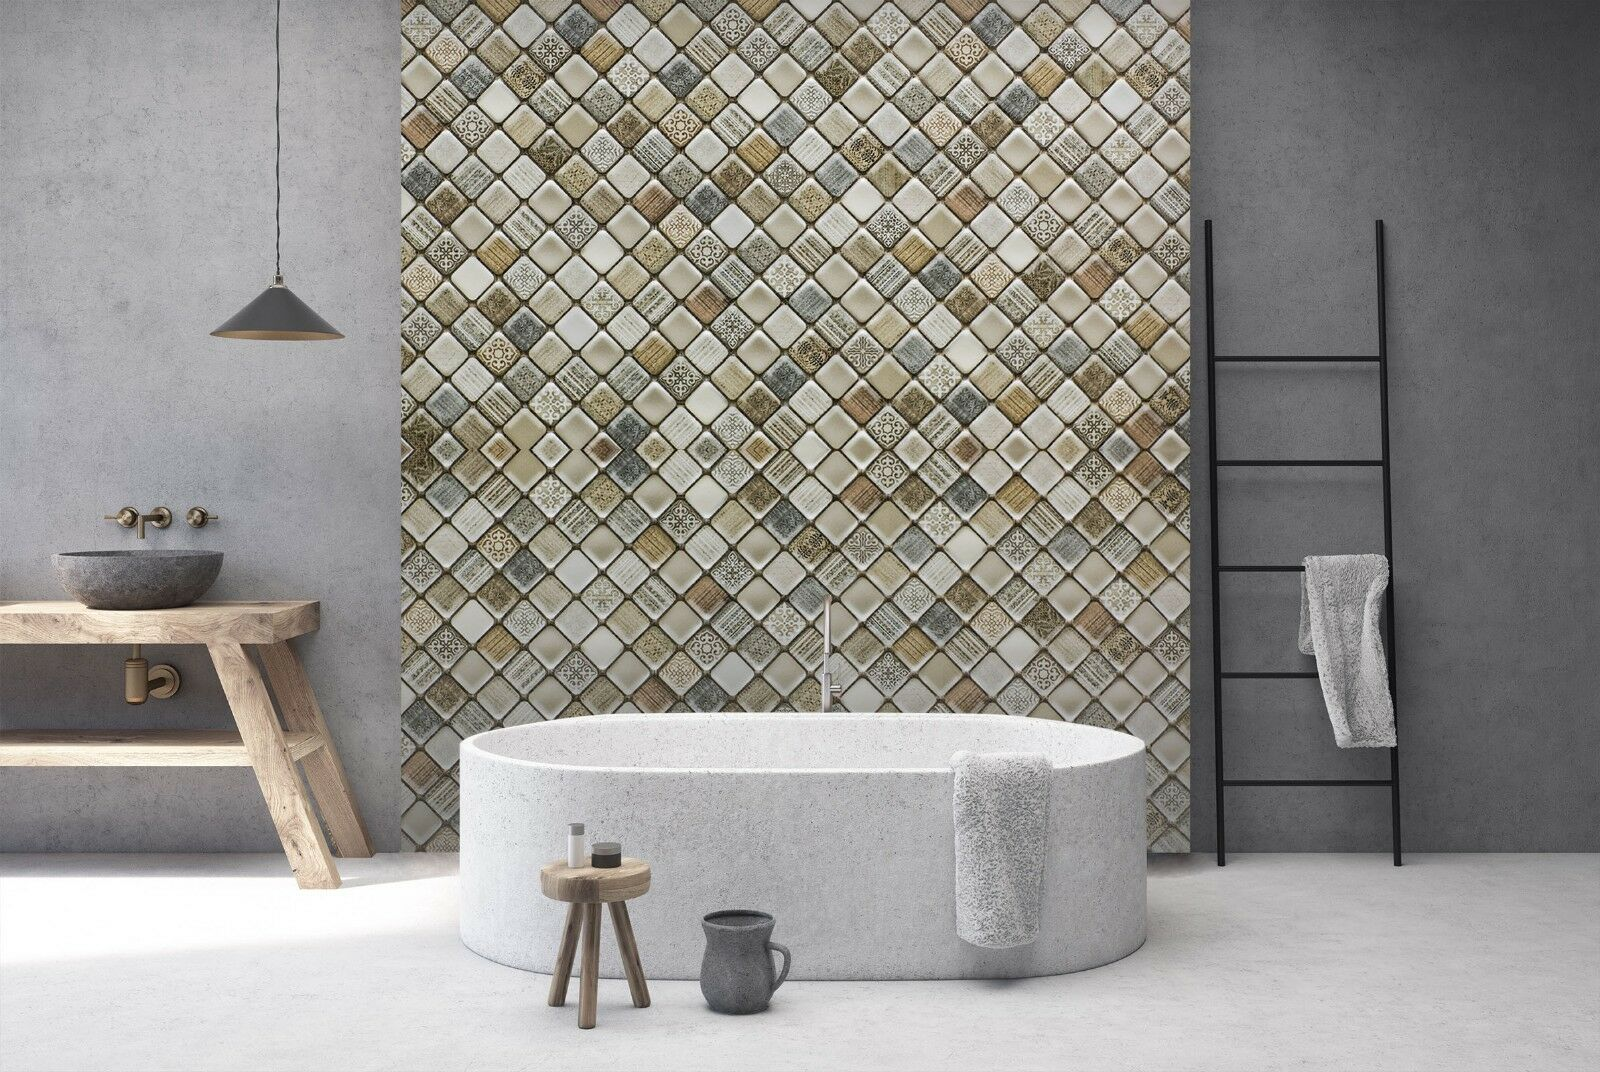 3D Floral Stone Sort 2 Texture Tiles Marble Wall Paper Decal Wallpaper Mural AJ